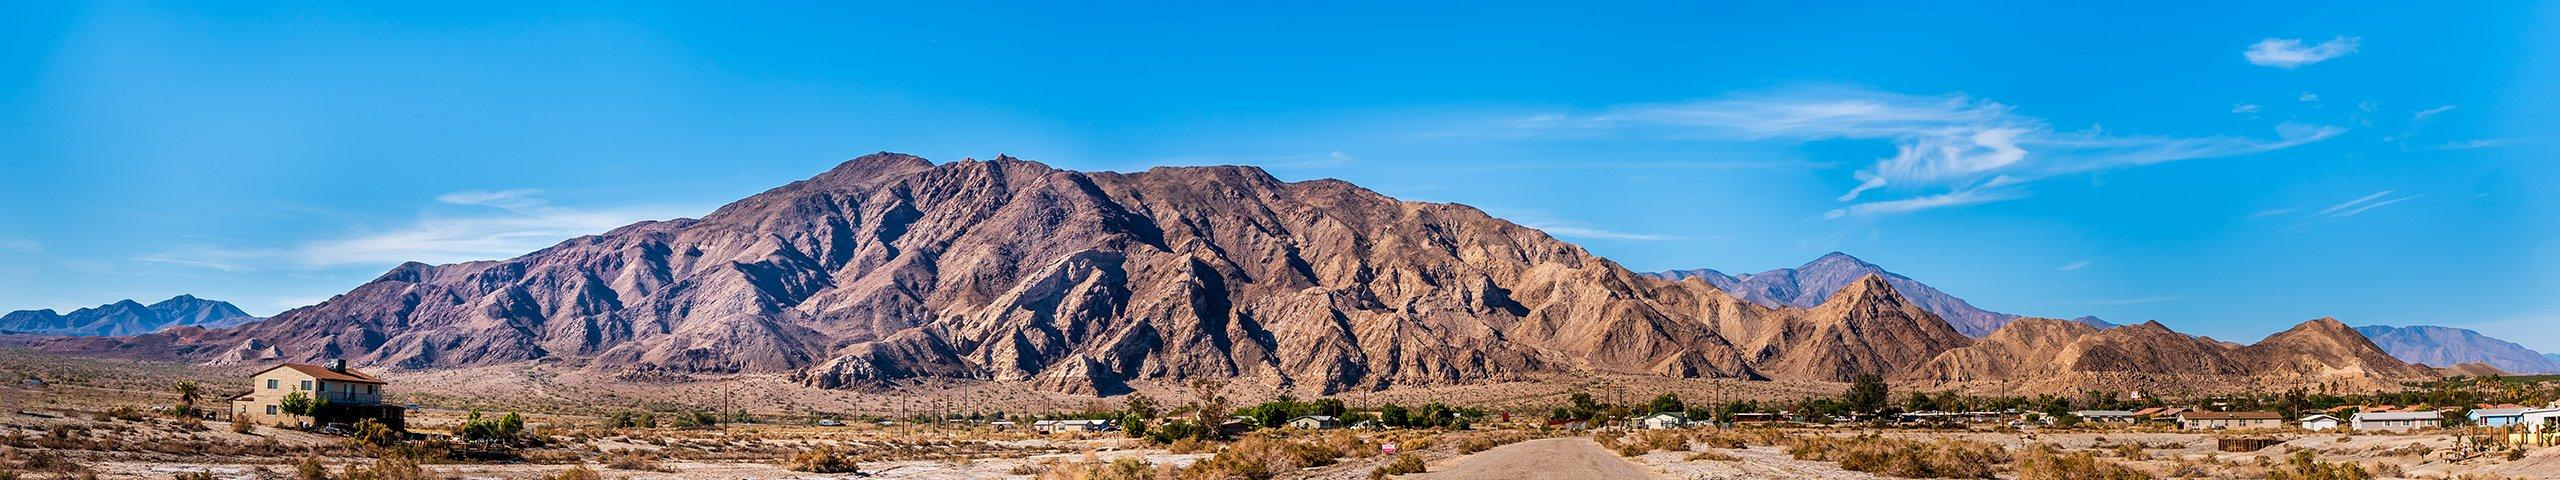 view of mountain in imperial valley california